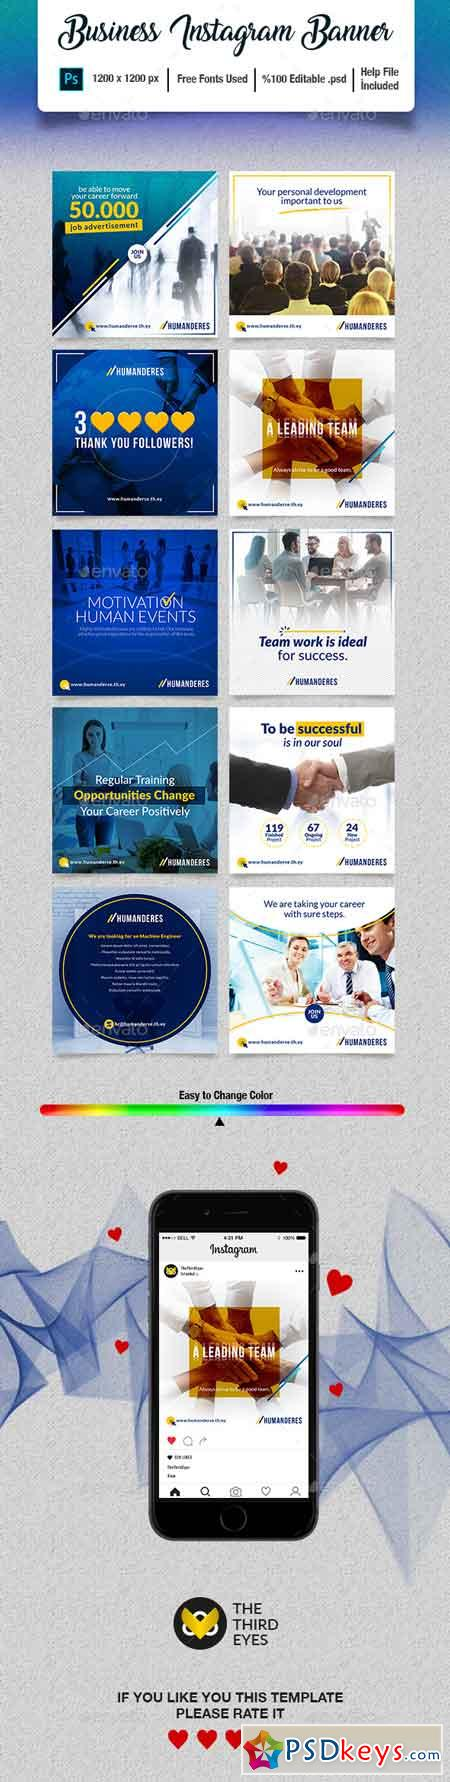 Business Instagram Banner 21922246